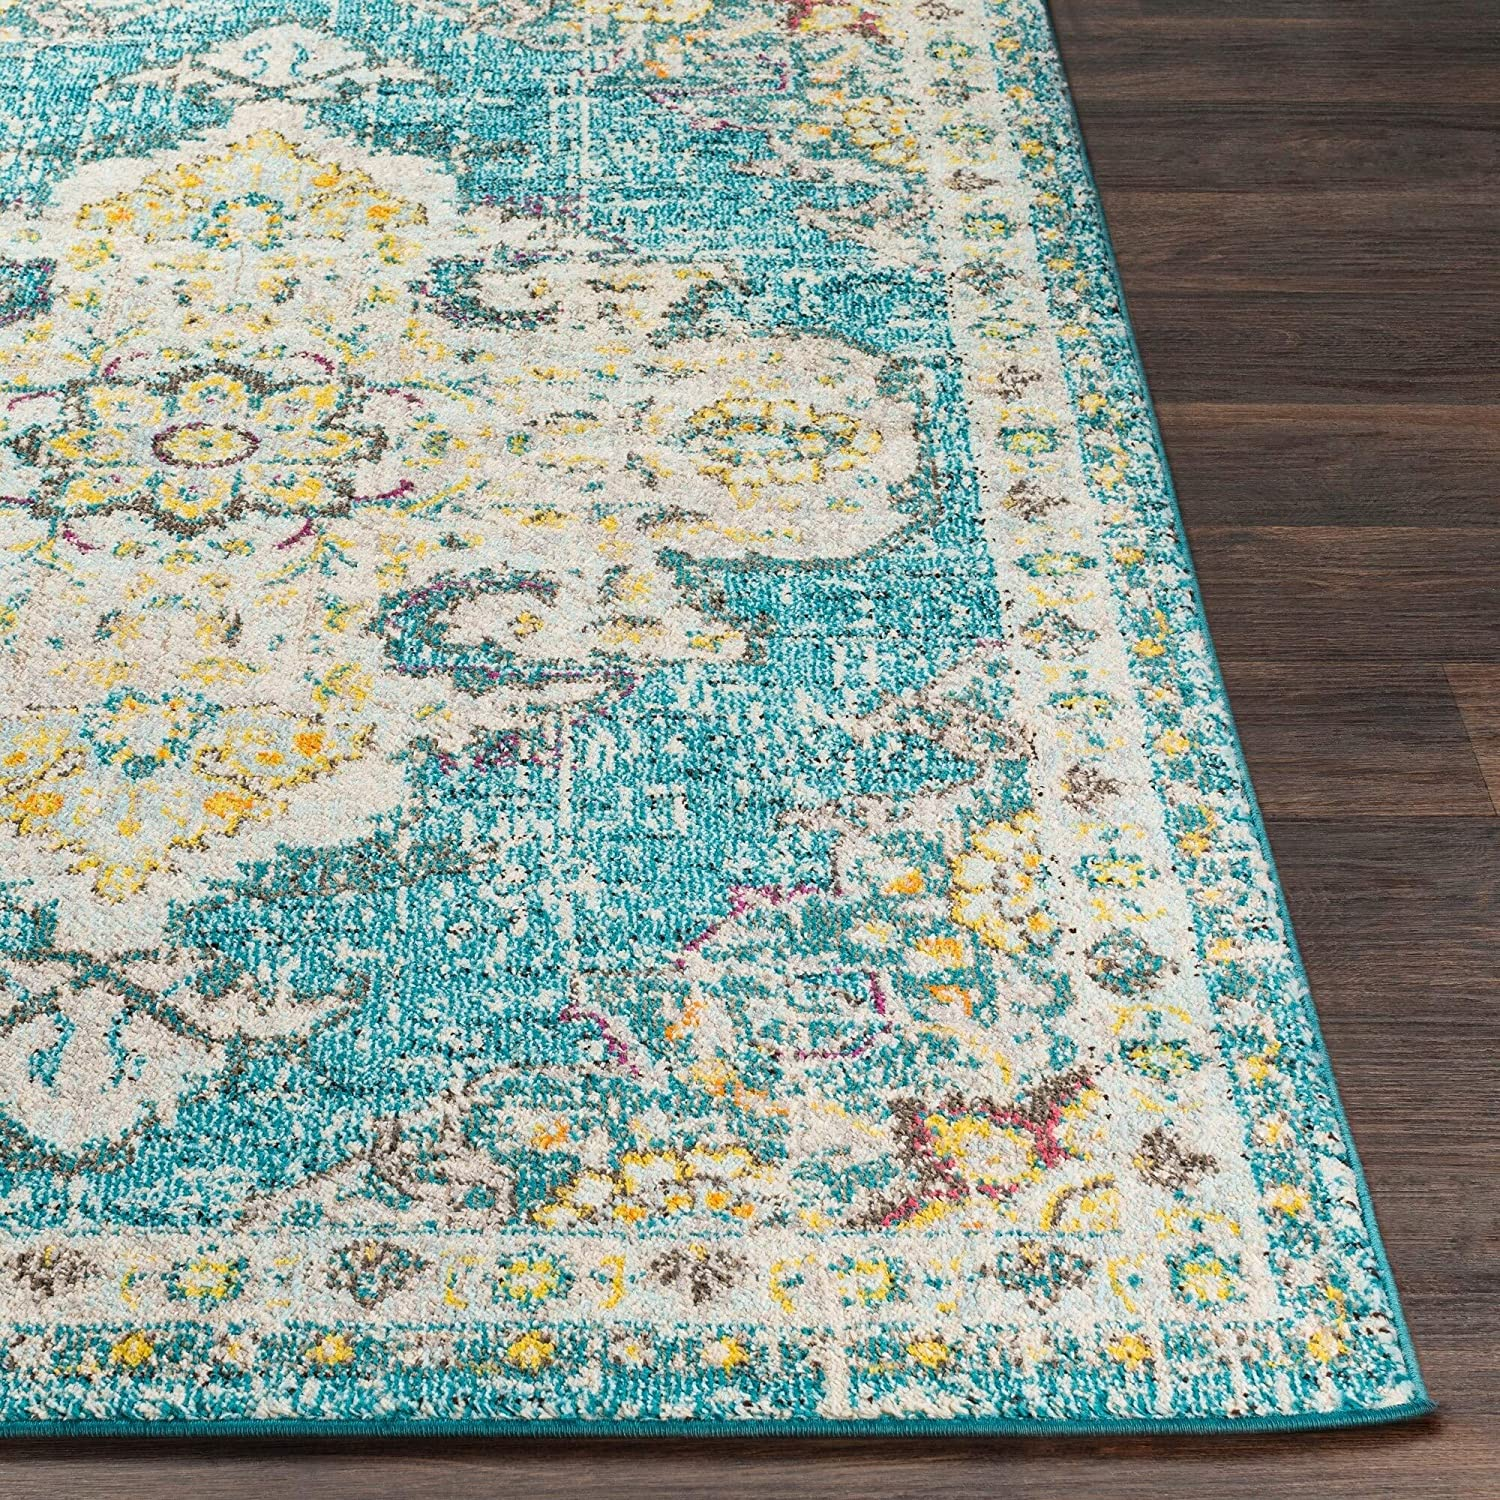 MISC Teal Vintage Distressed Medallion Area Rug 2' X 3' Blue Polypropylene Synthetic Latex Free Pet Friendly Stain Resistant